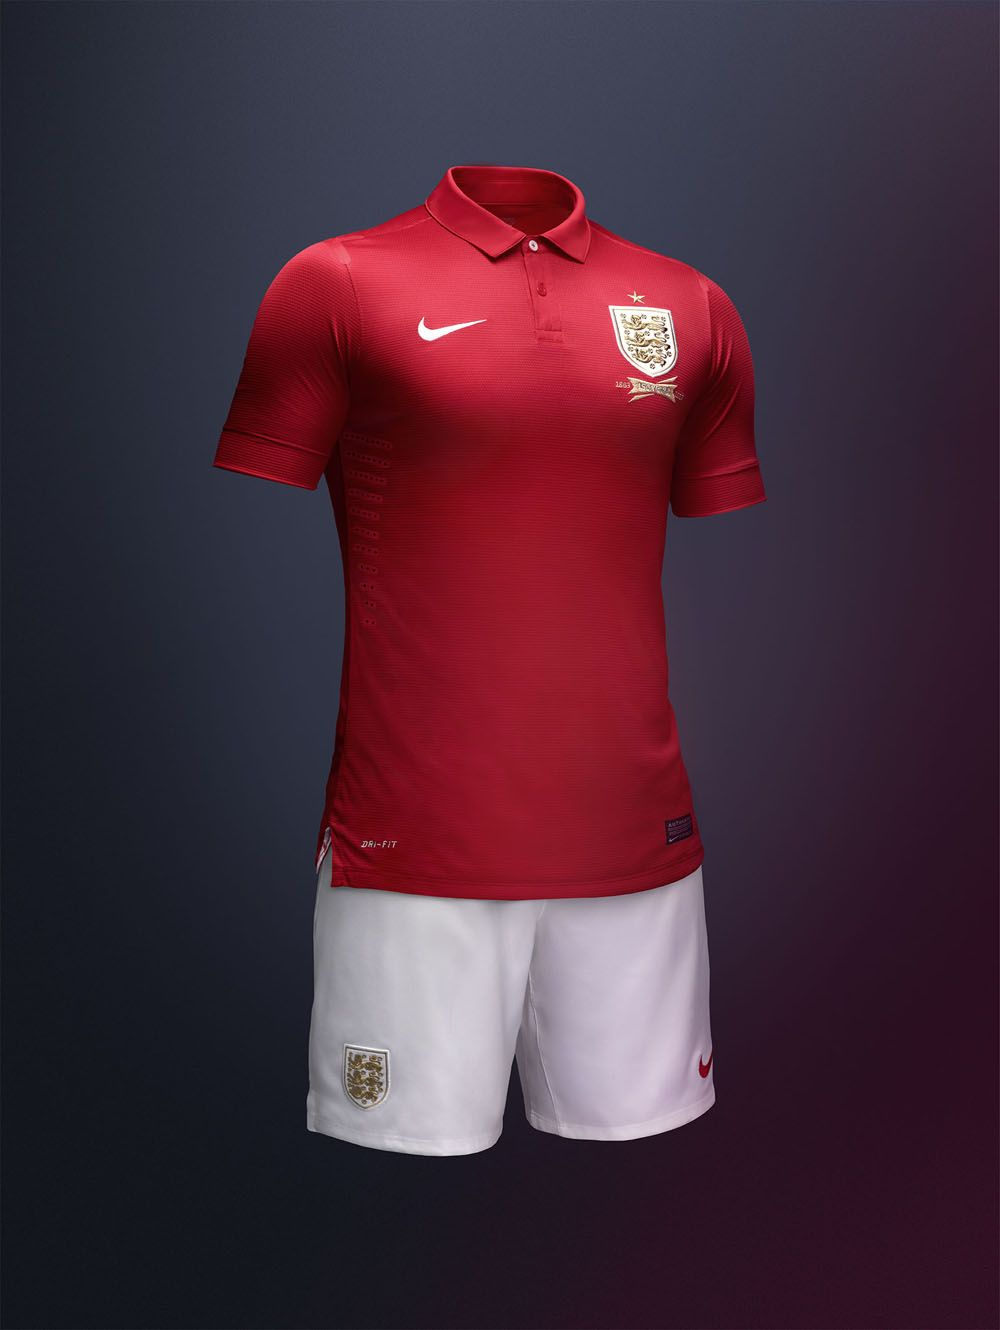 new concept 88575 6b4c9 england national team jersey